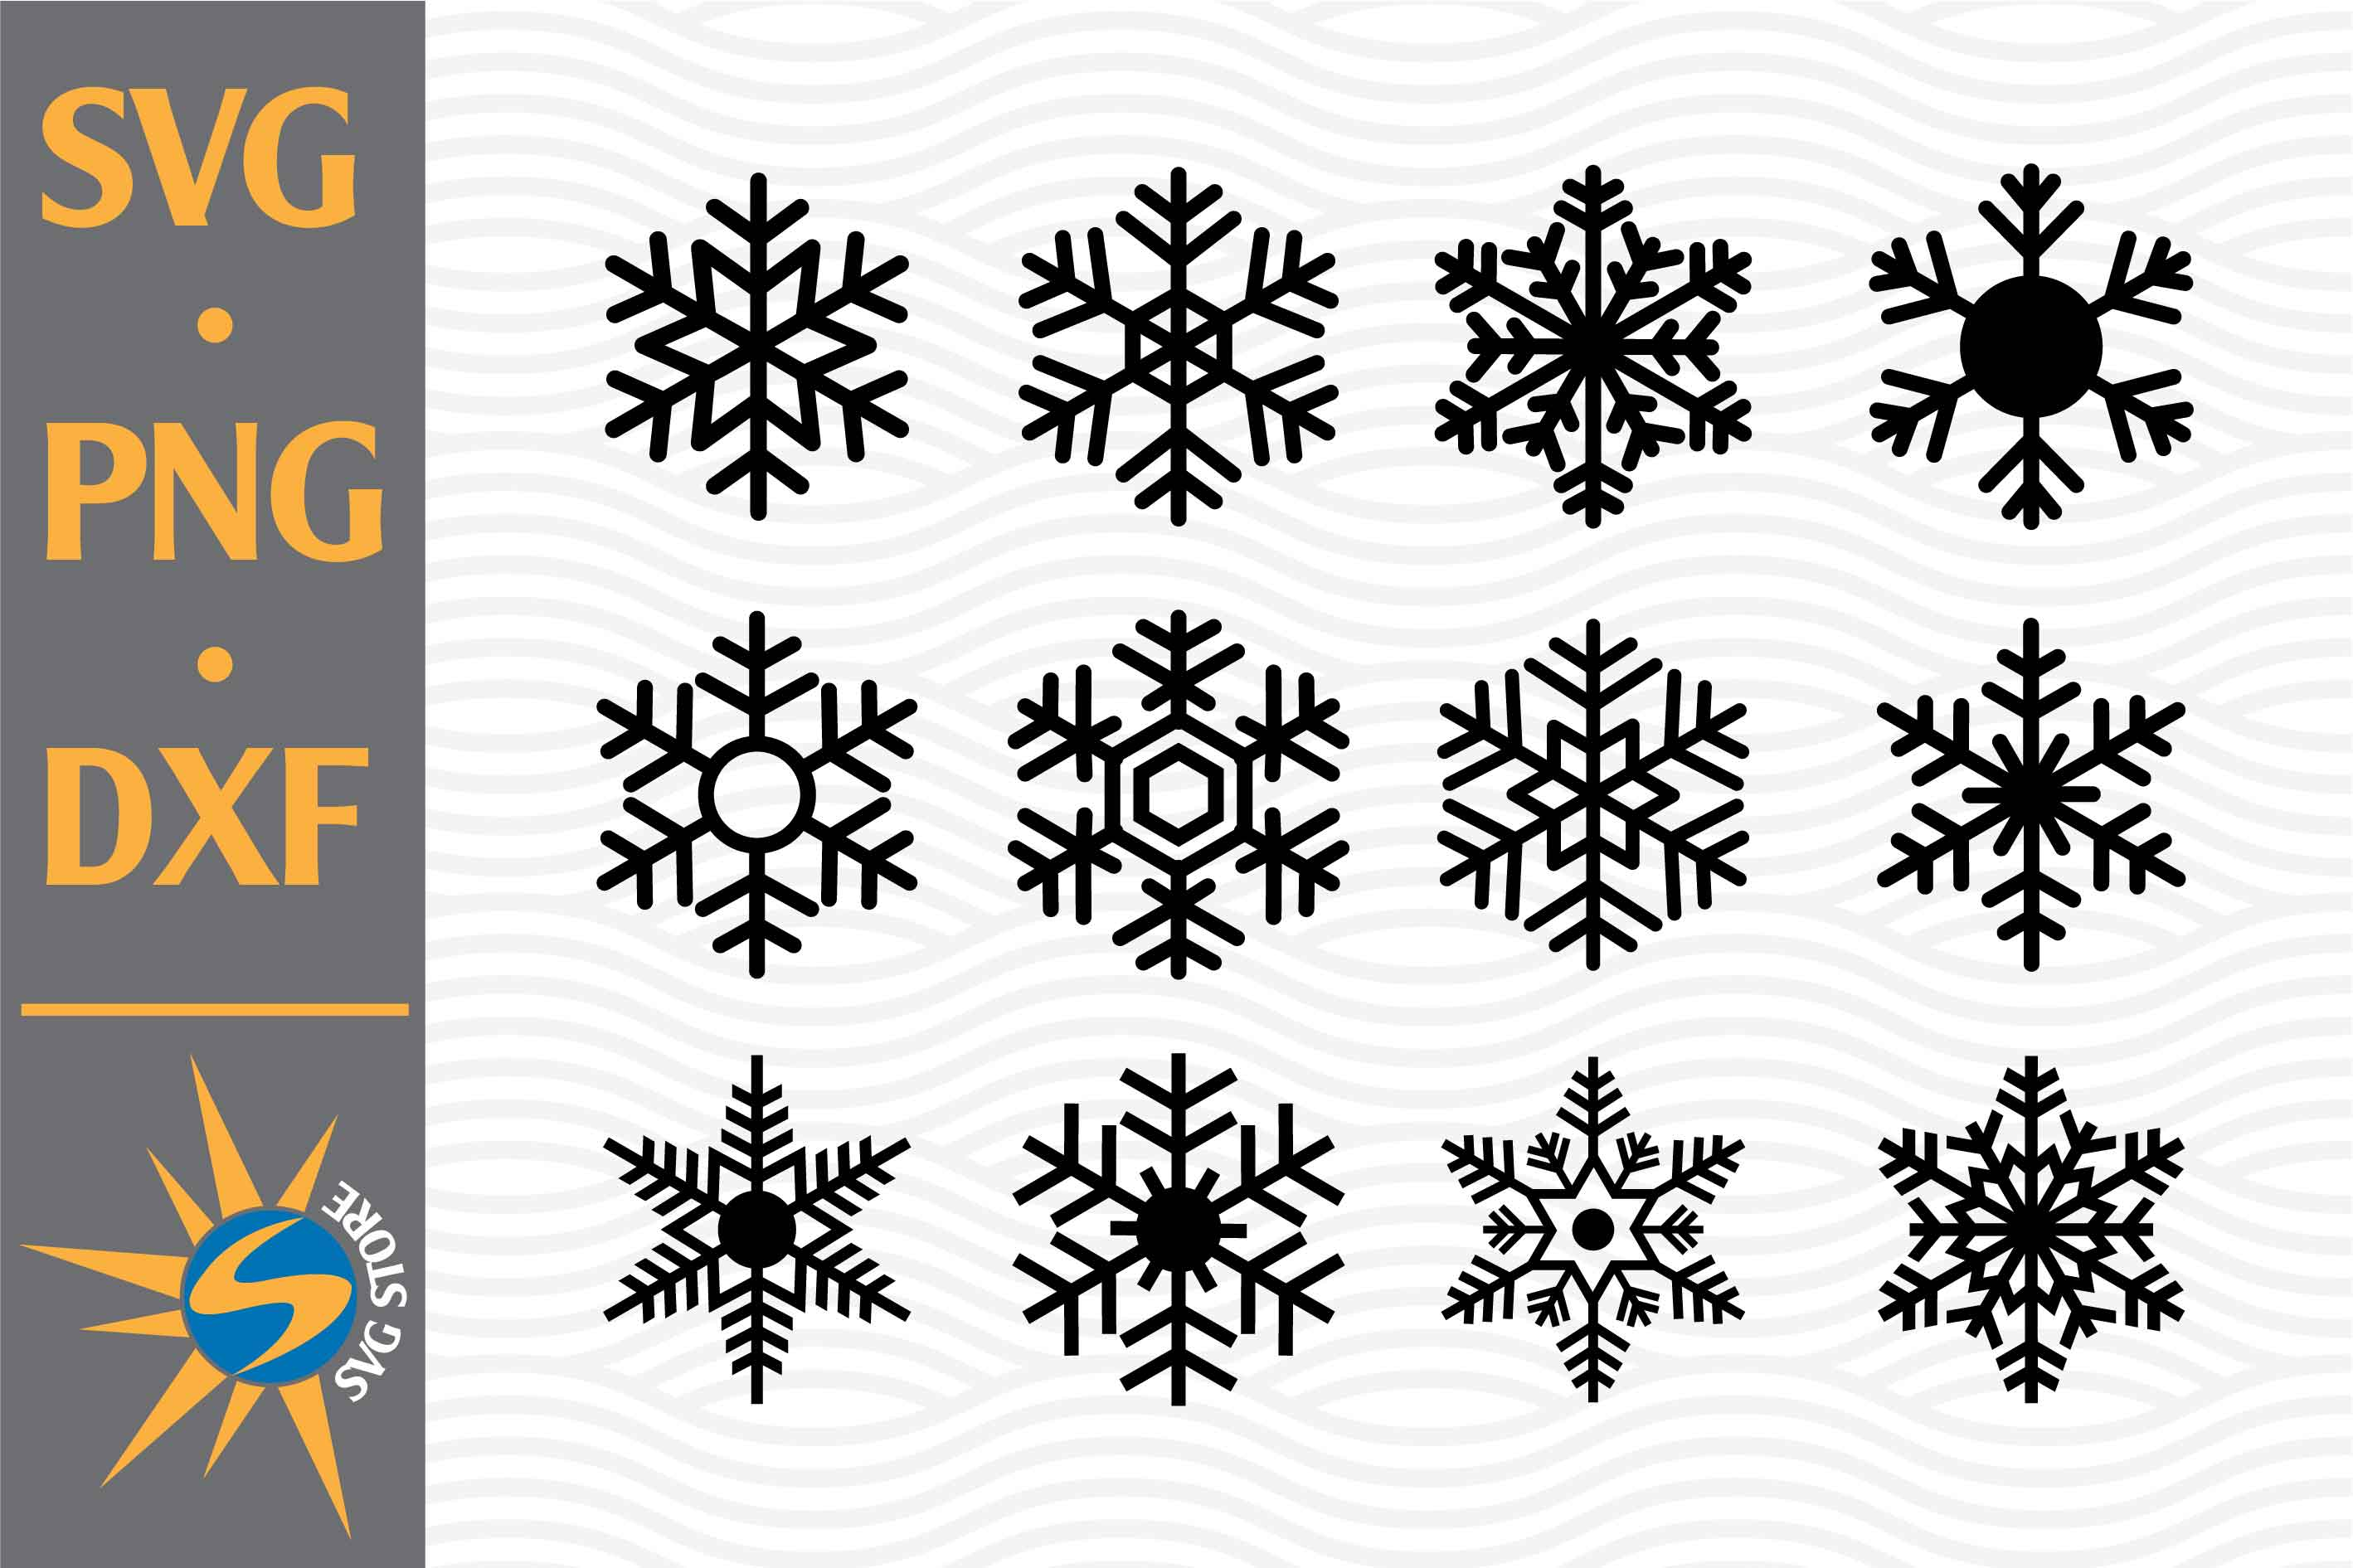 Snowflake Silhouette Graphic By Svgstoreshop Creative Fabrica See more ideas about snowflake silhouette, snowflakes, silhouette design. snowflake silhouette